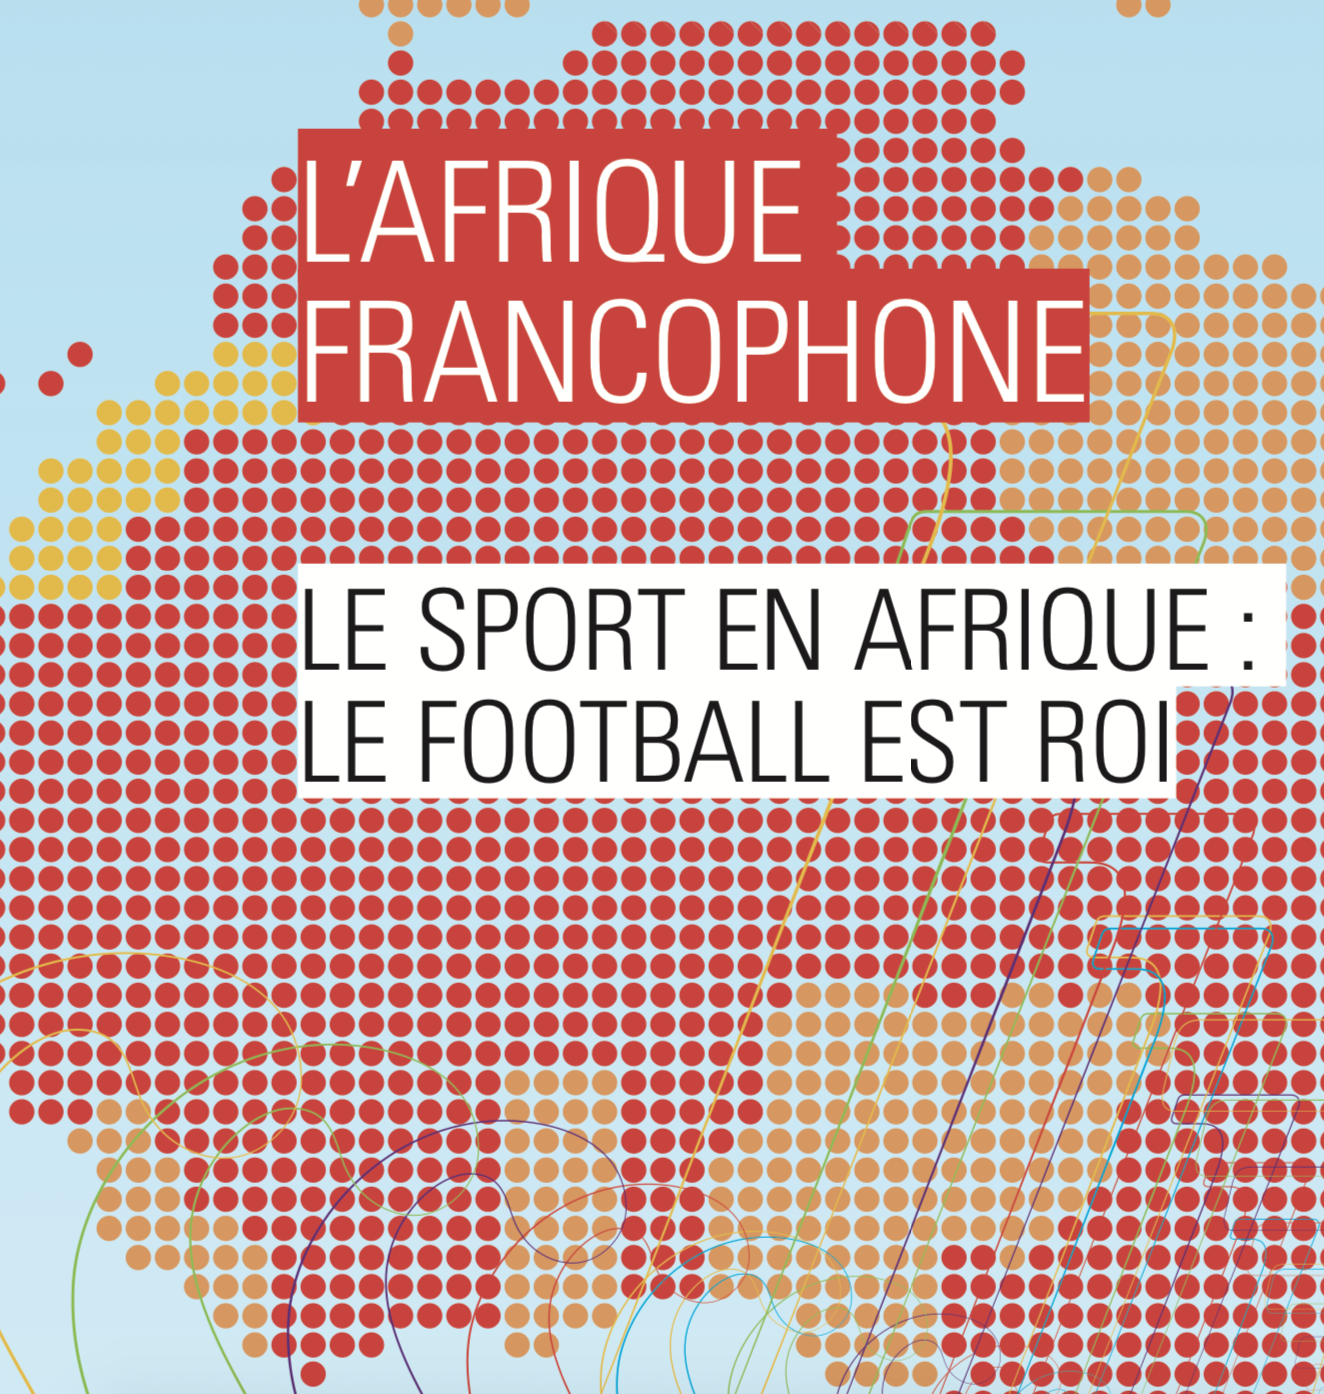 Preview image for LOM object Le sport en Afrique: le football est roi